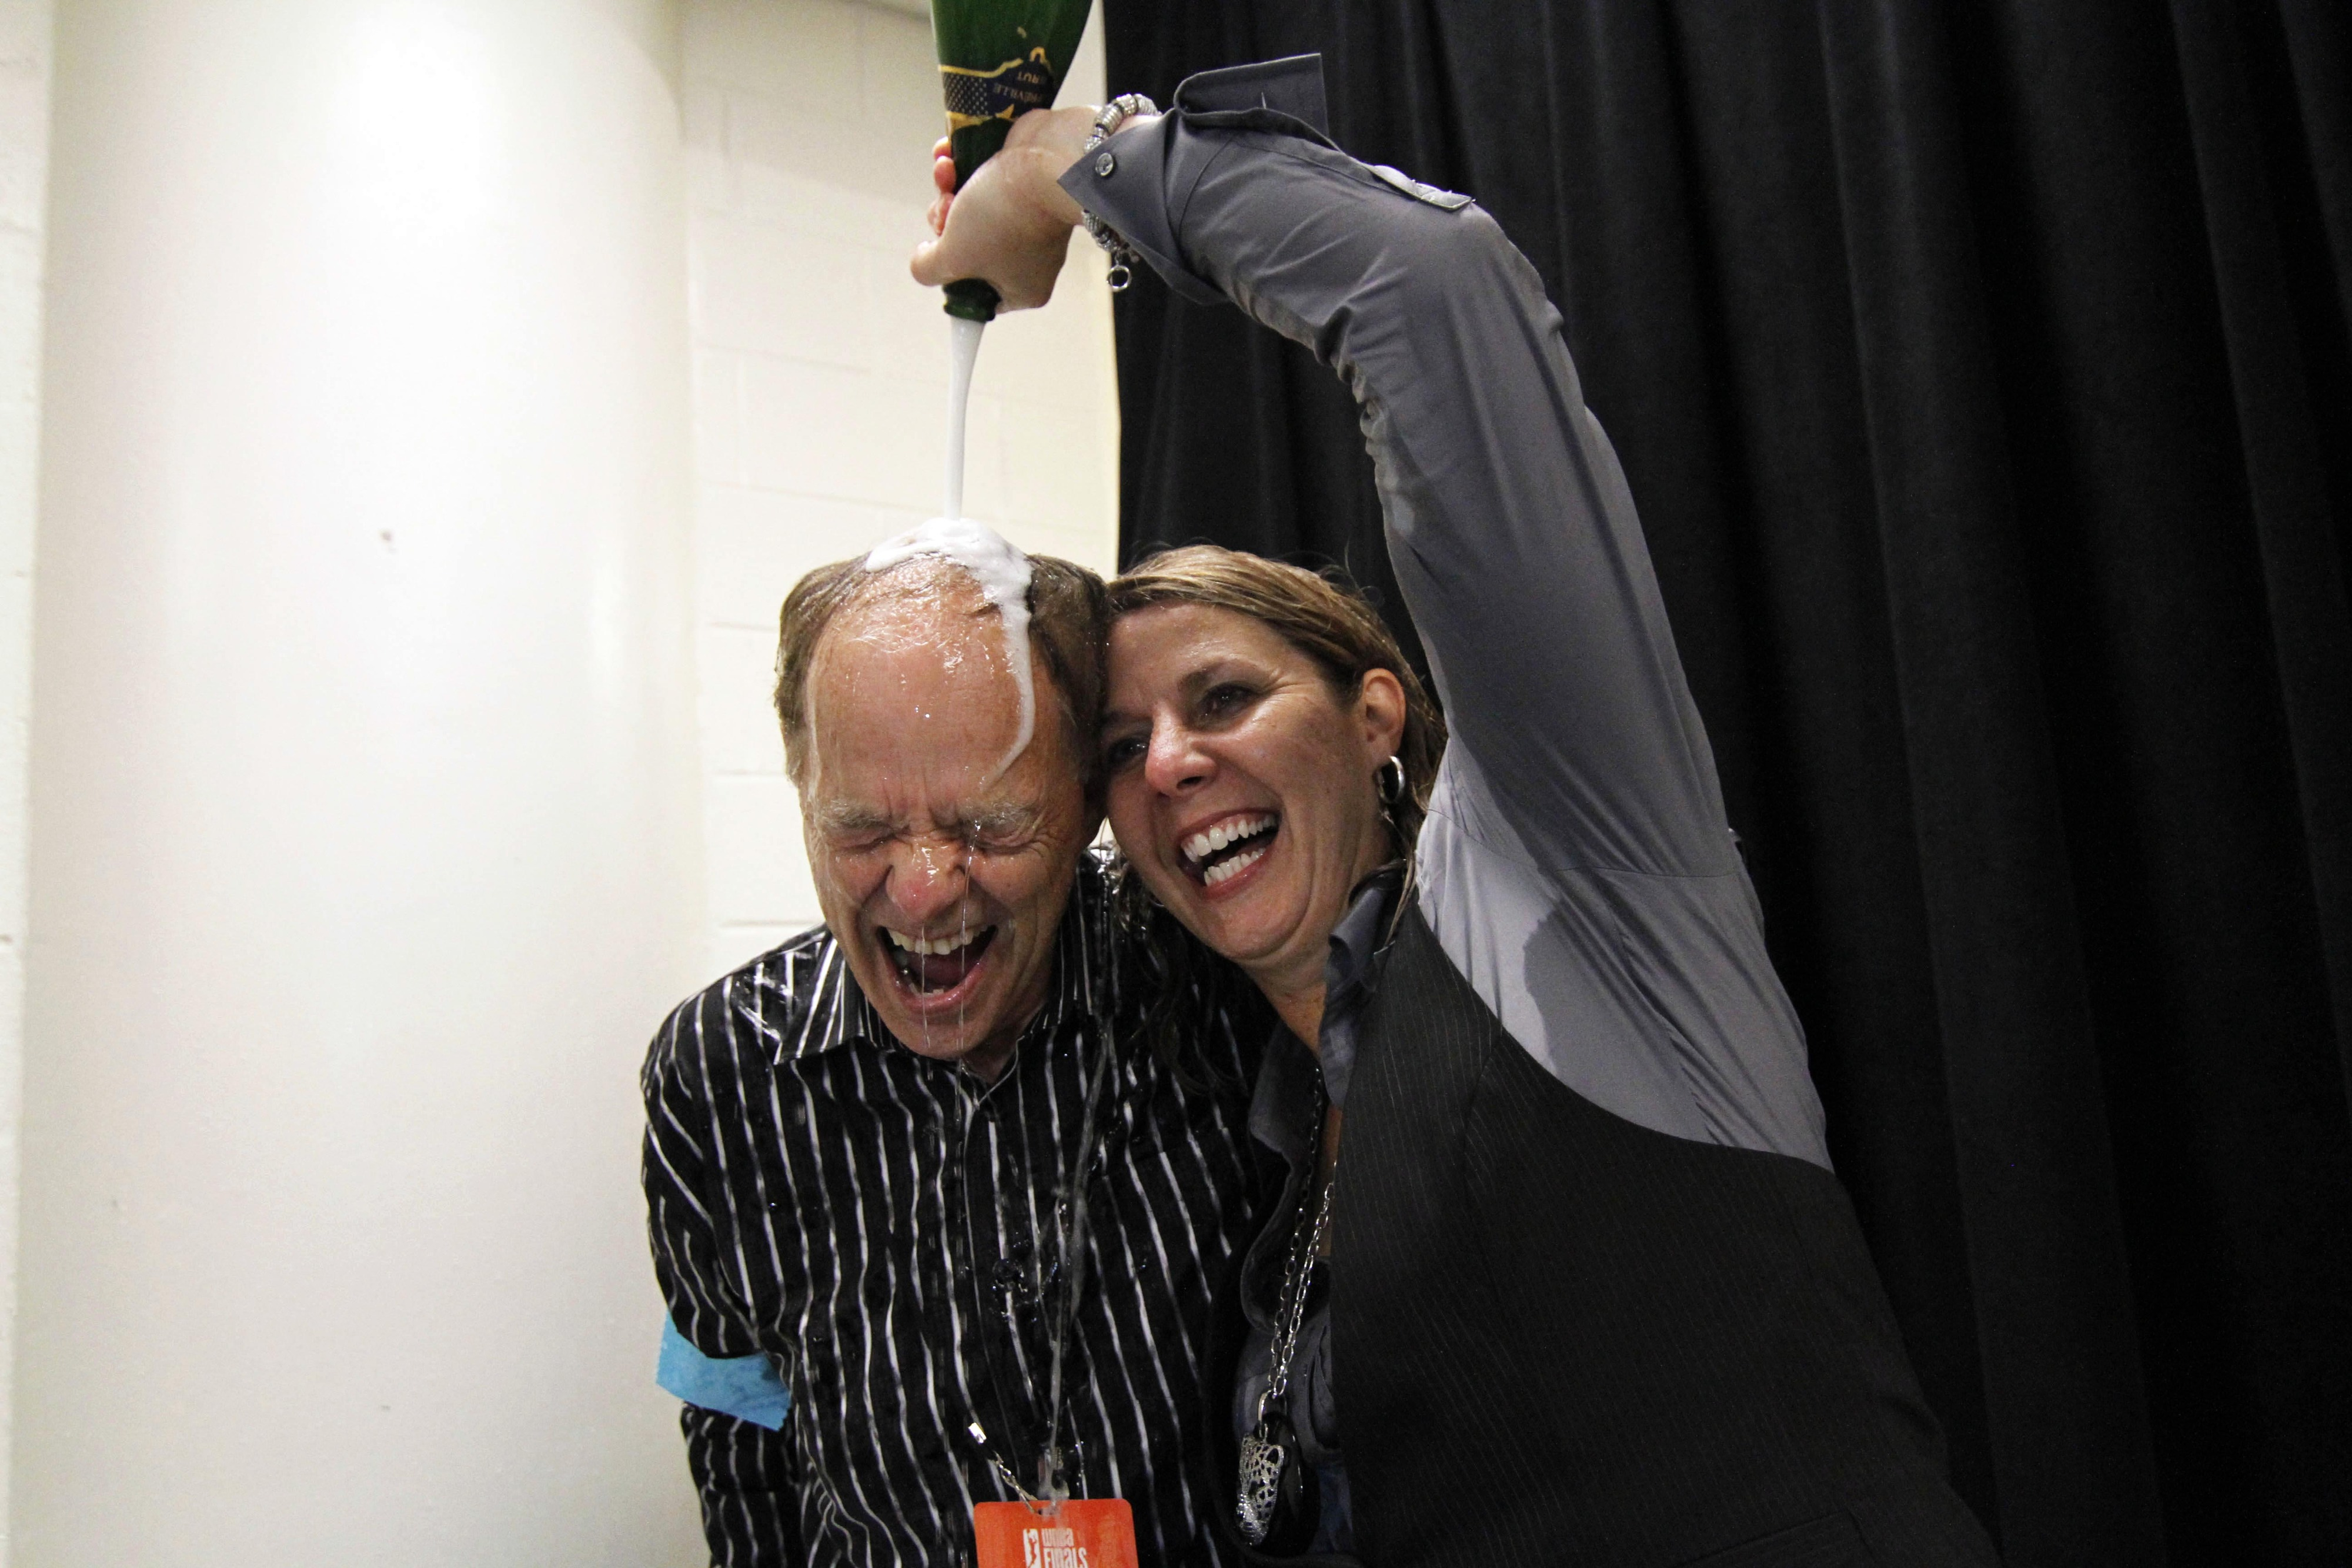 I can only imagine how cold that drink feels on Glen Taylor's bald spot.